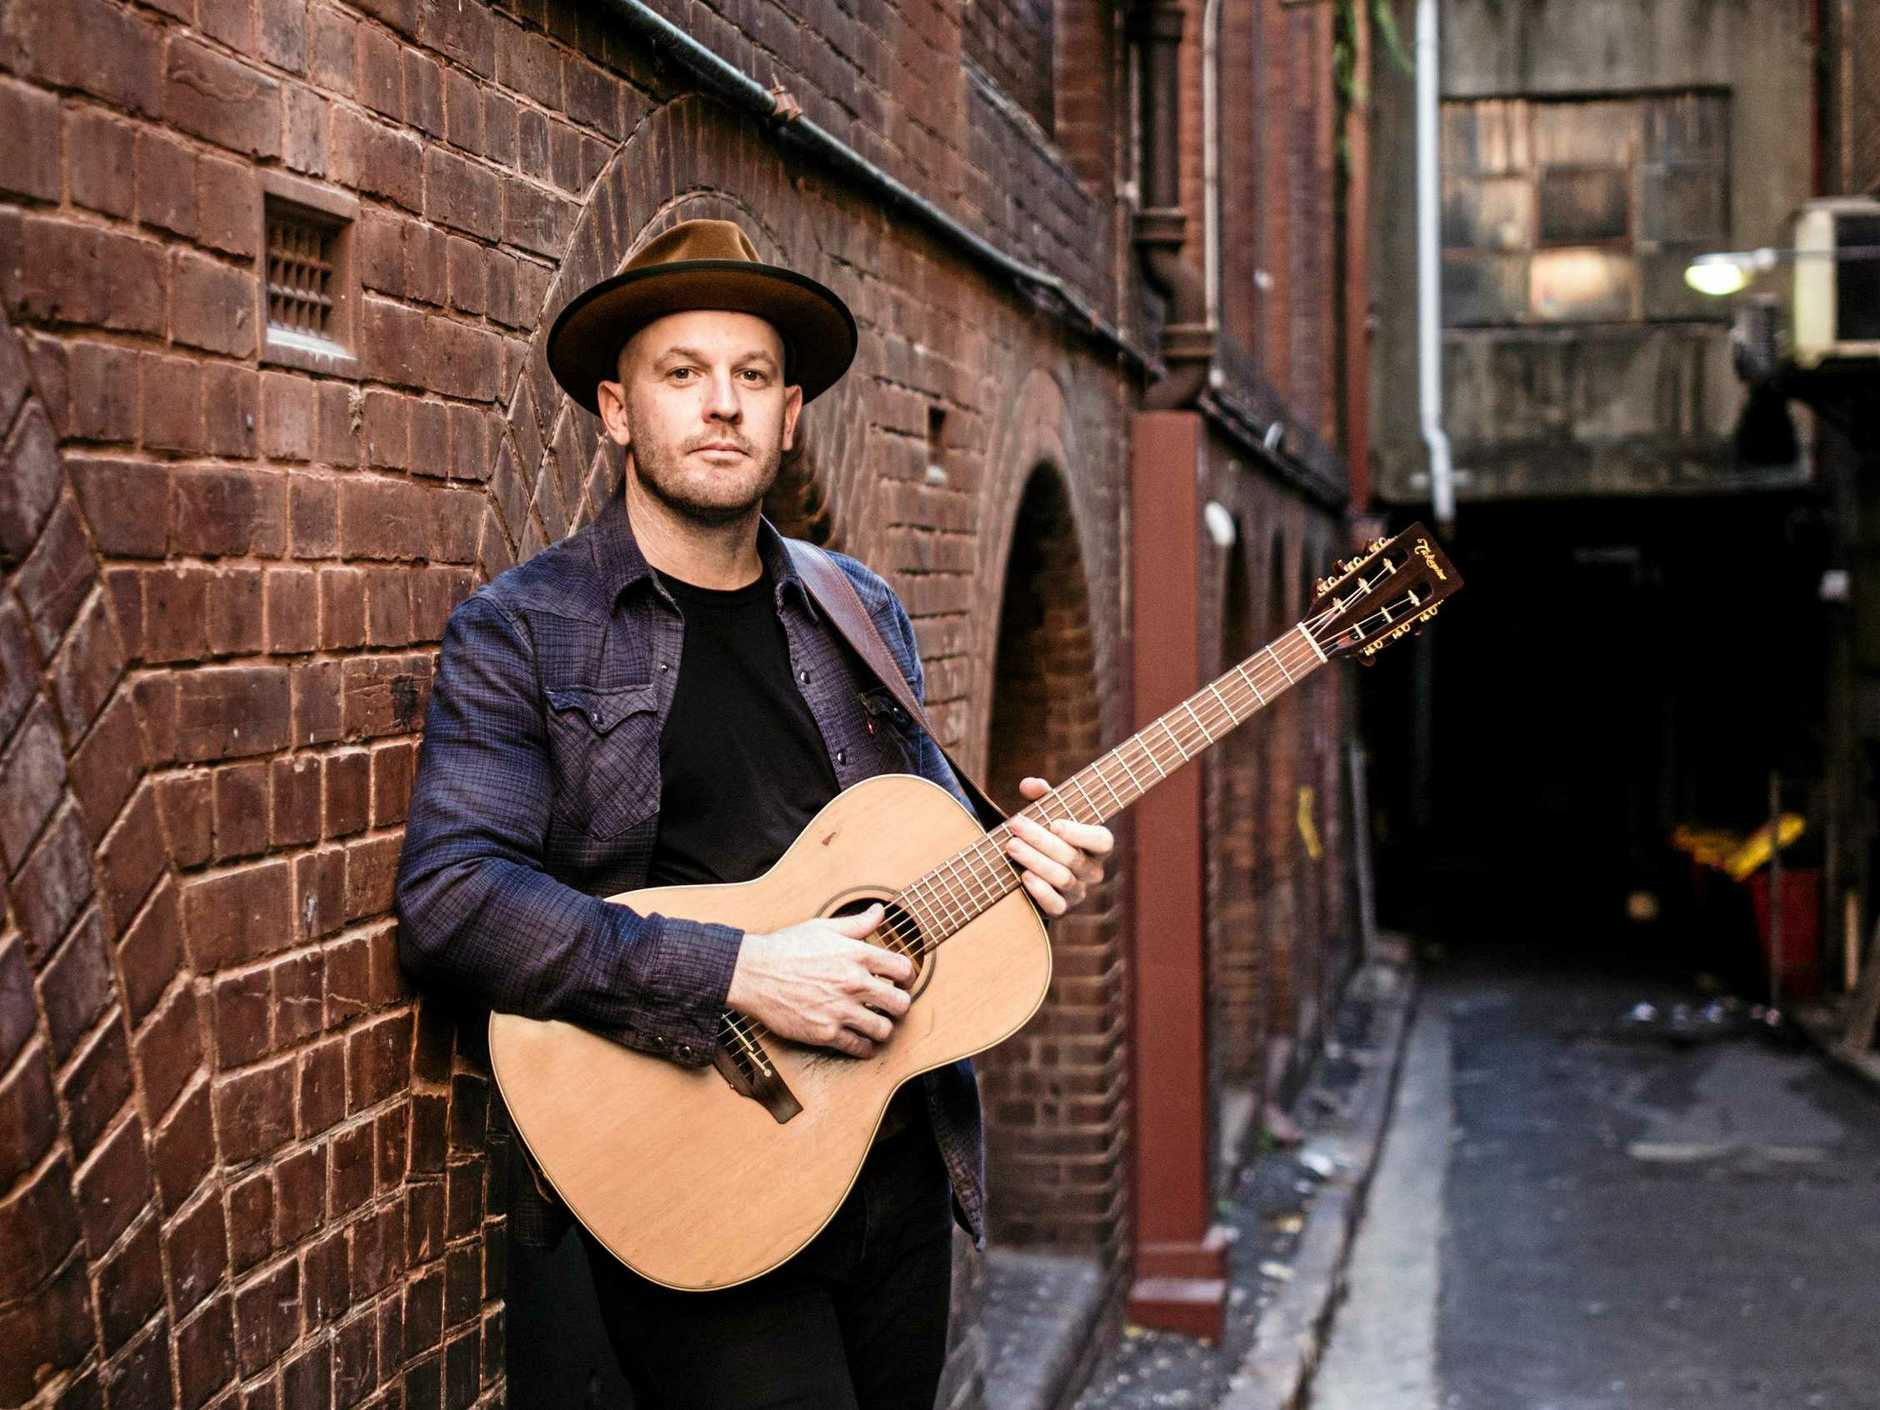 Brad Butcher, another much loved Mackay resident, will share the stage with Graeme Connors at the Supper Club Sessions on July 24.